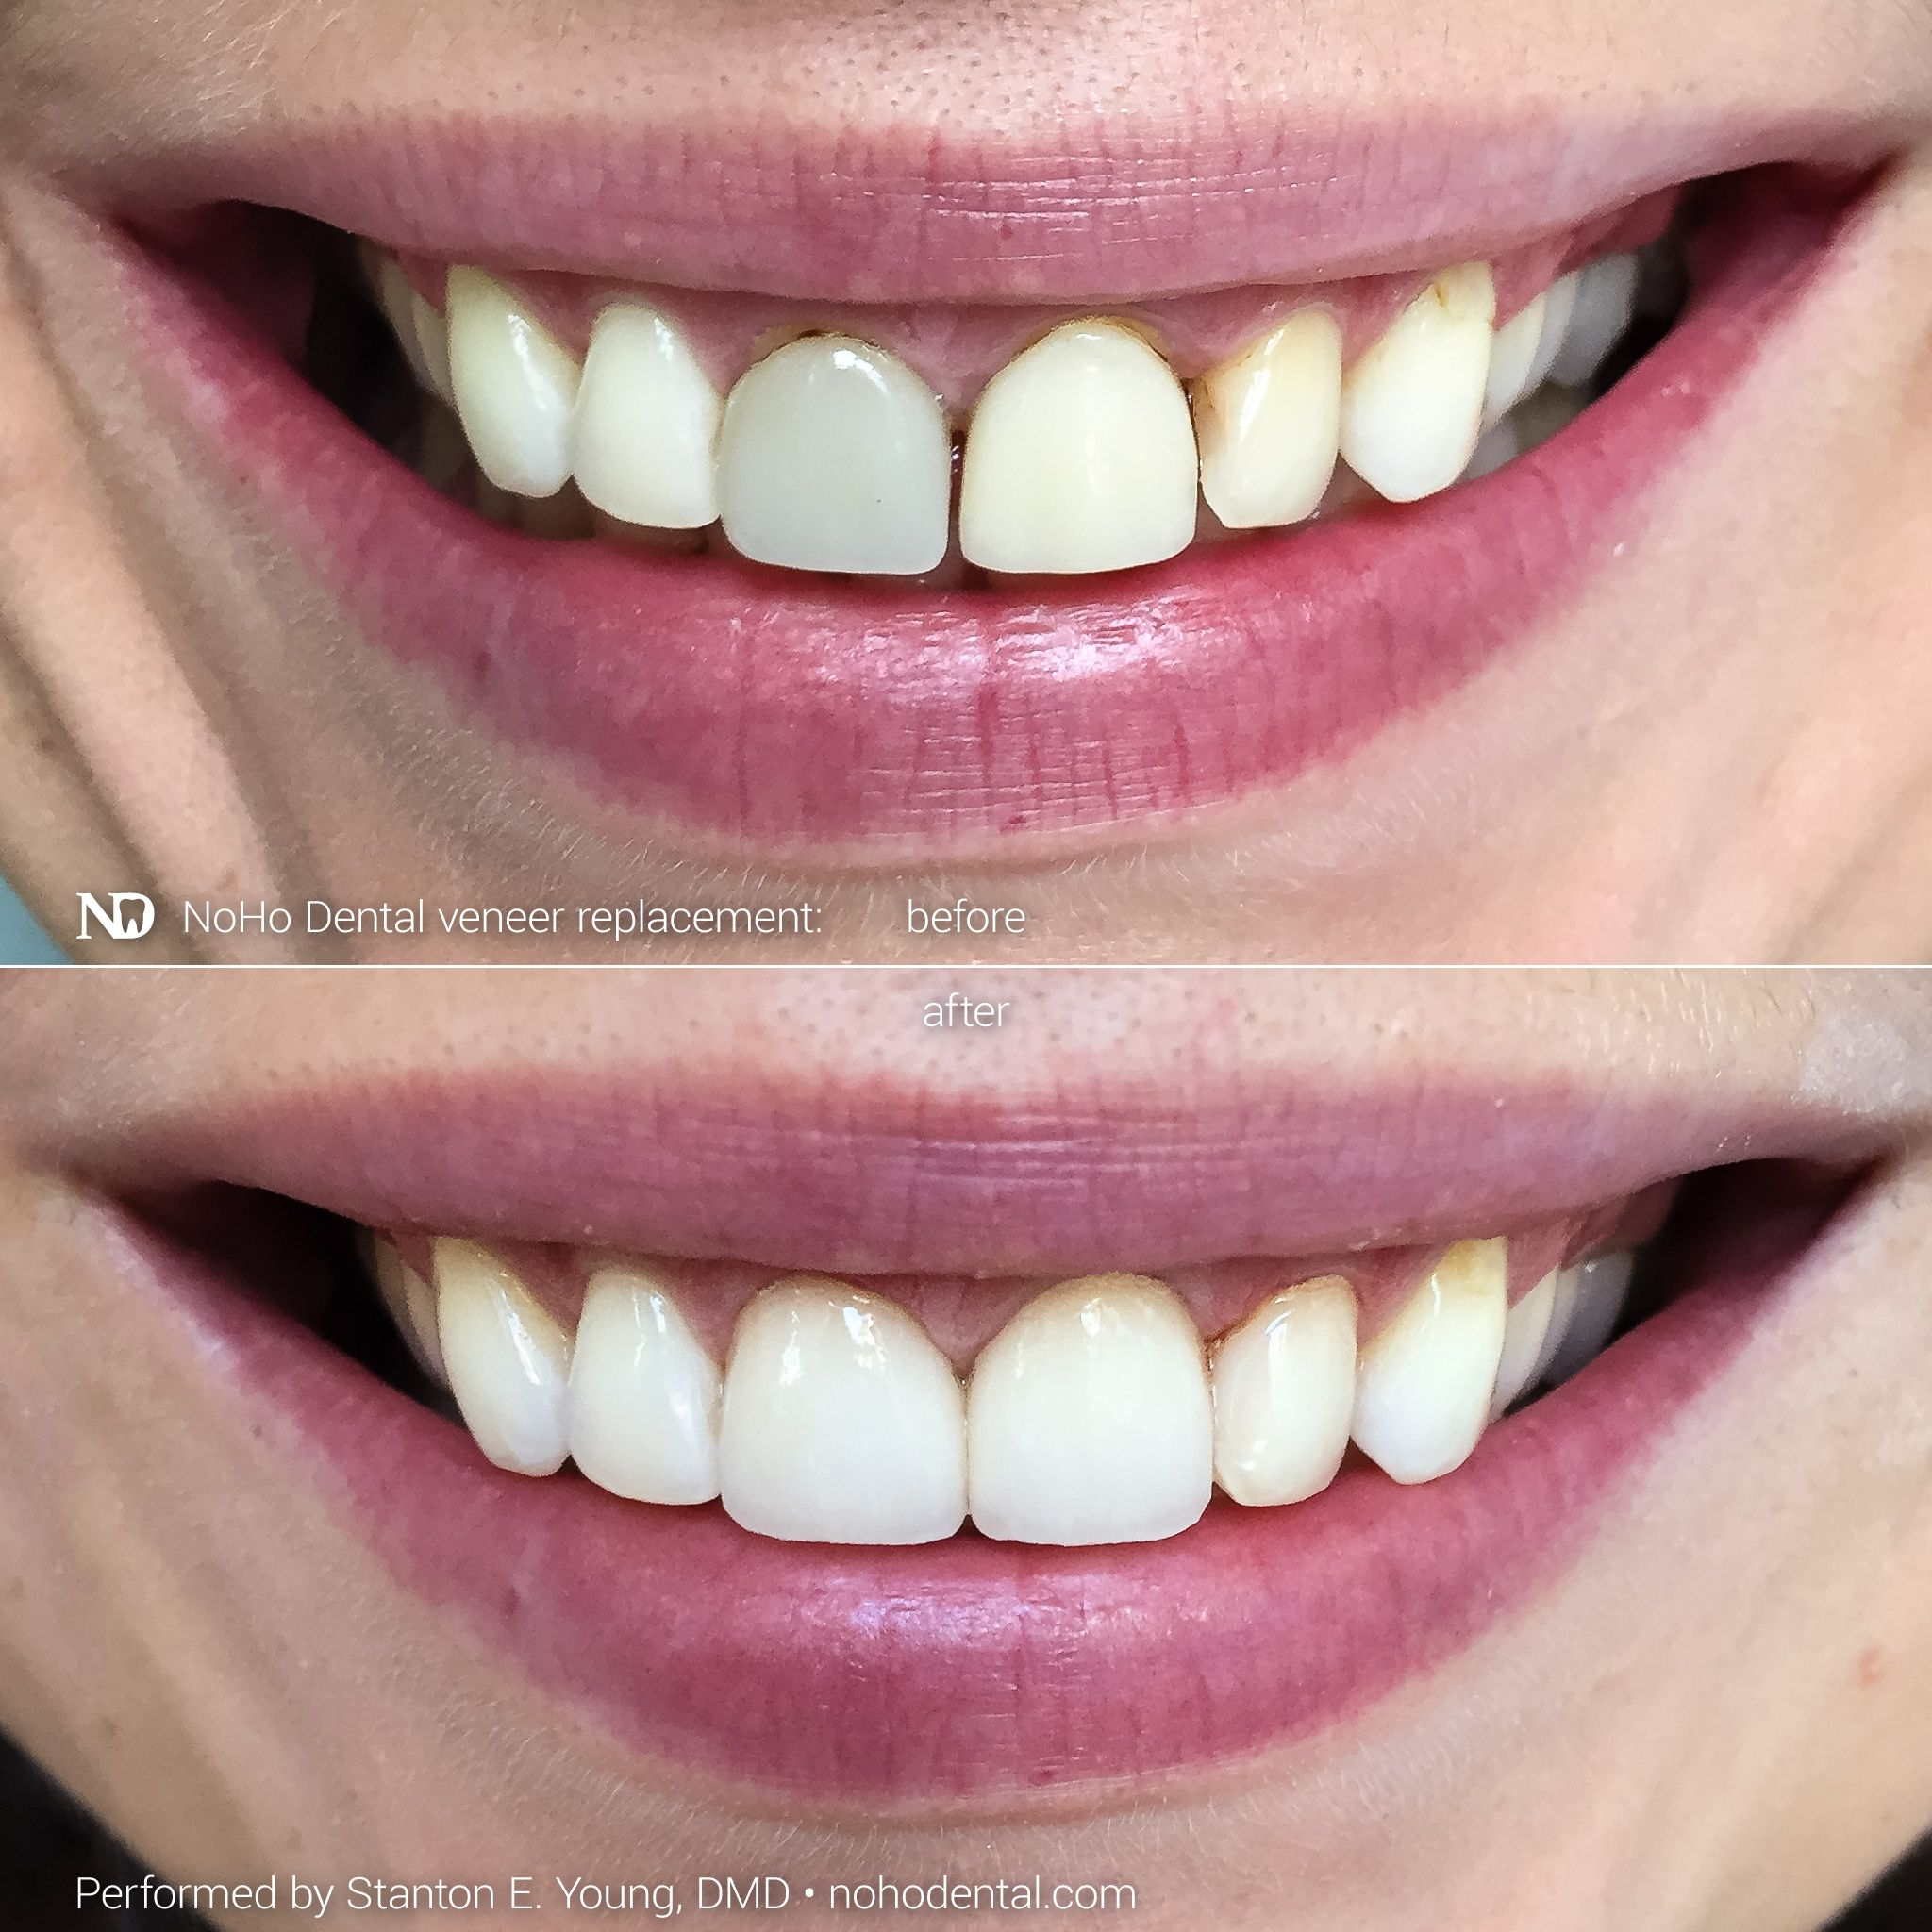 This Patients Dental Veneers Were Poorly Shaped And Color Matched Had An Imprecise Margin